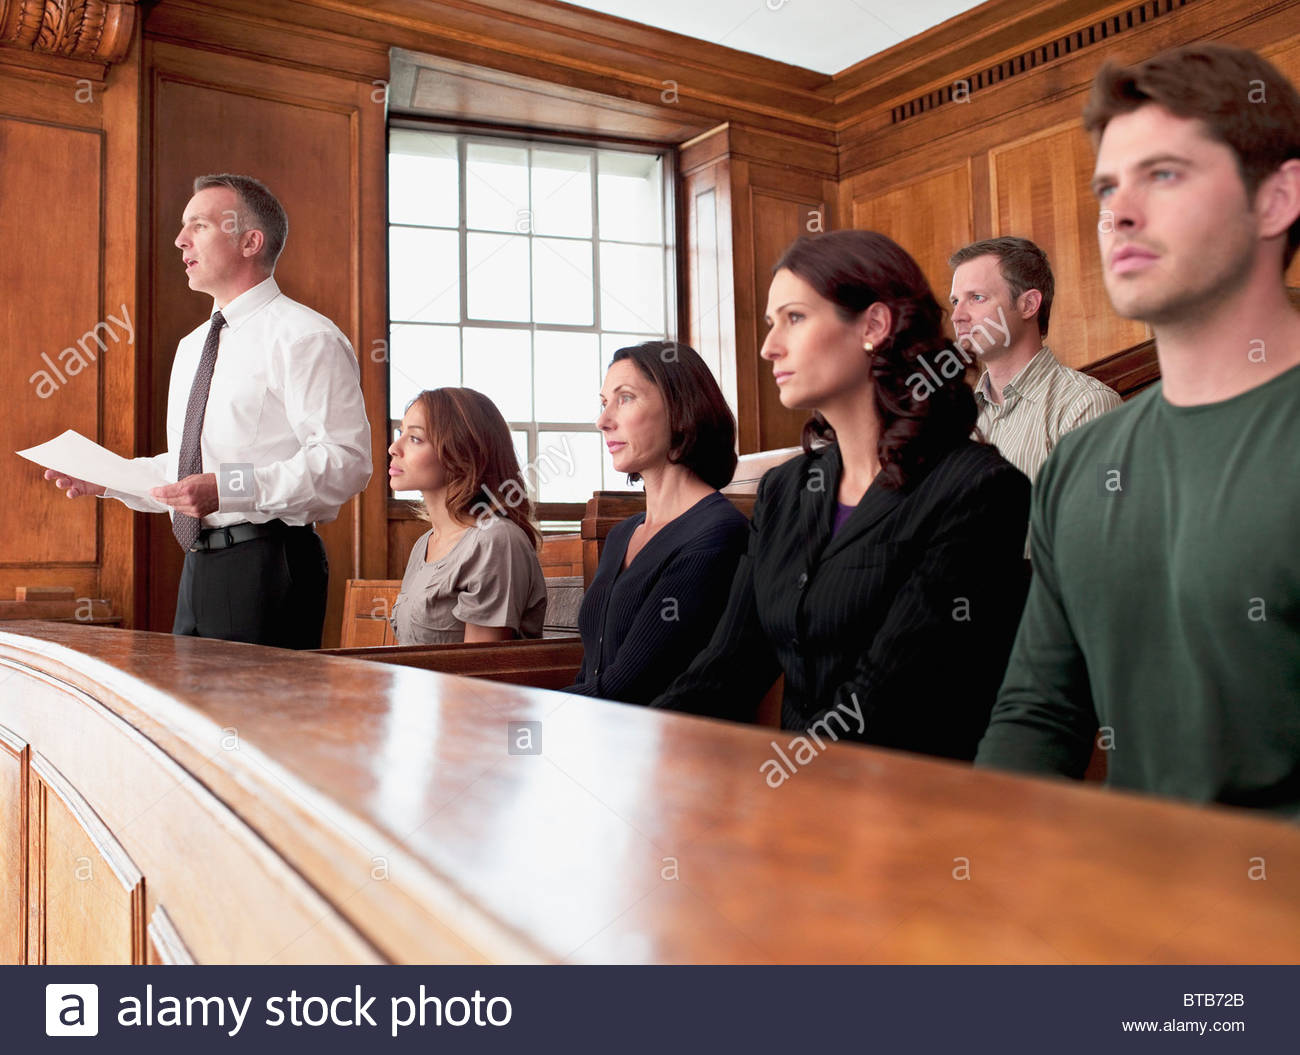 Jury sitting in courtroom - Stock Image